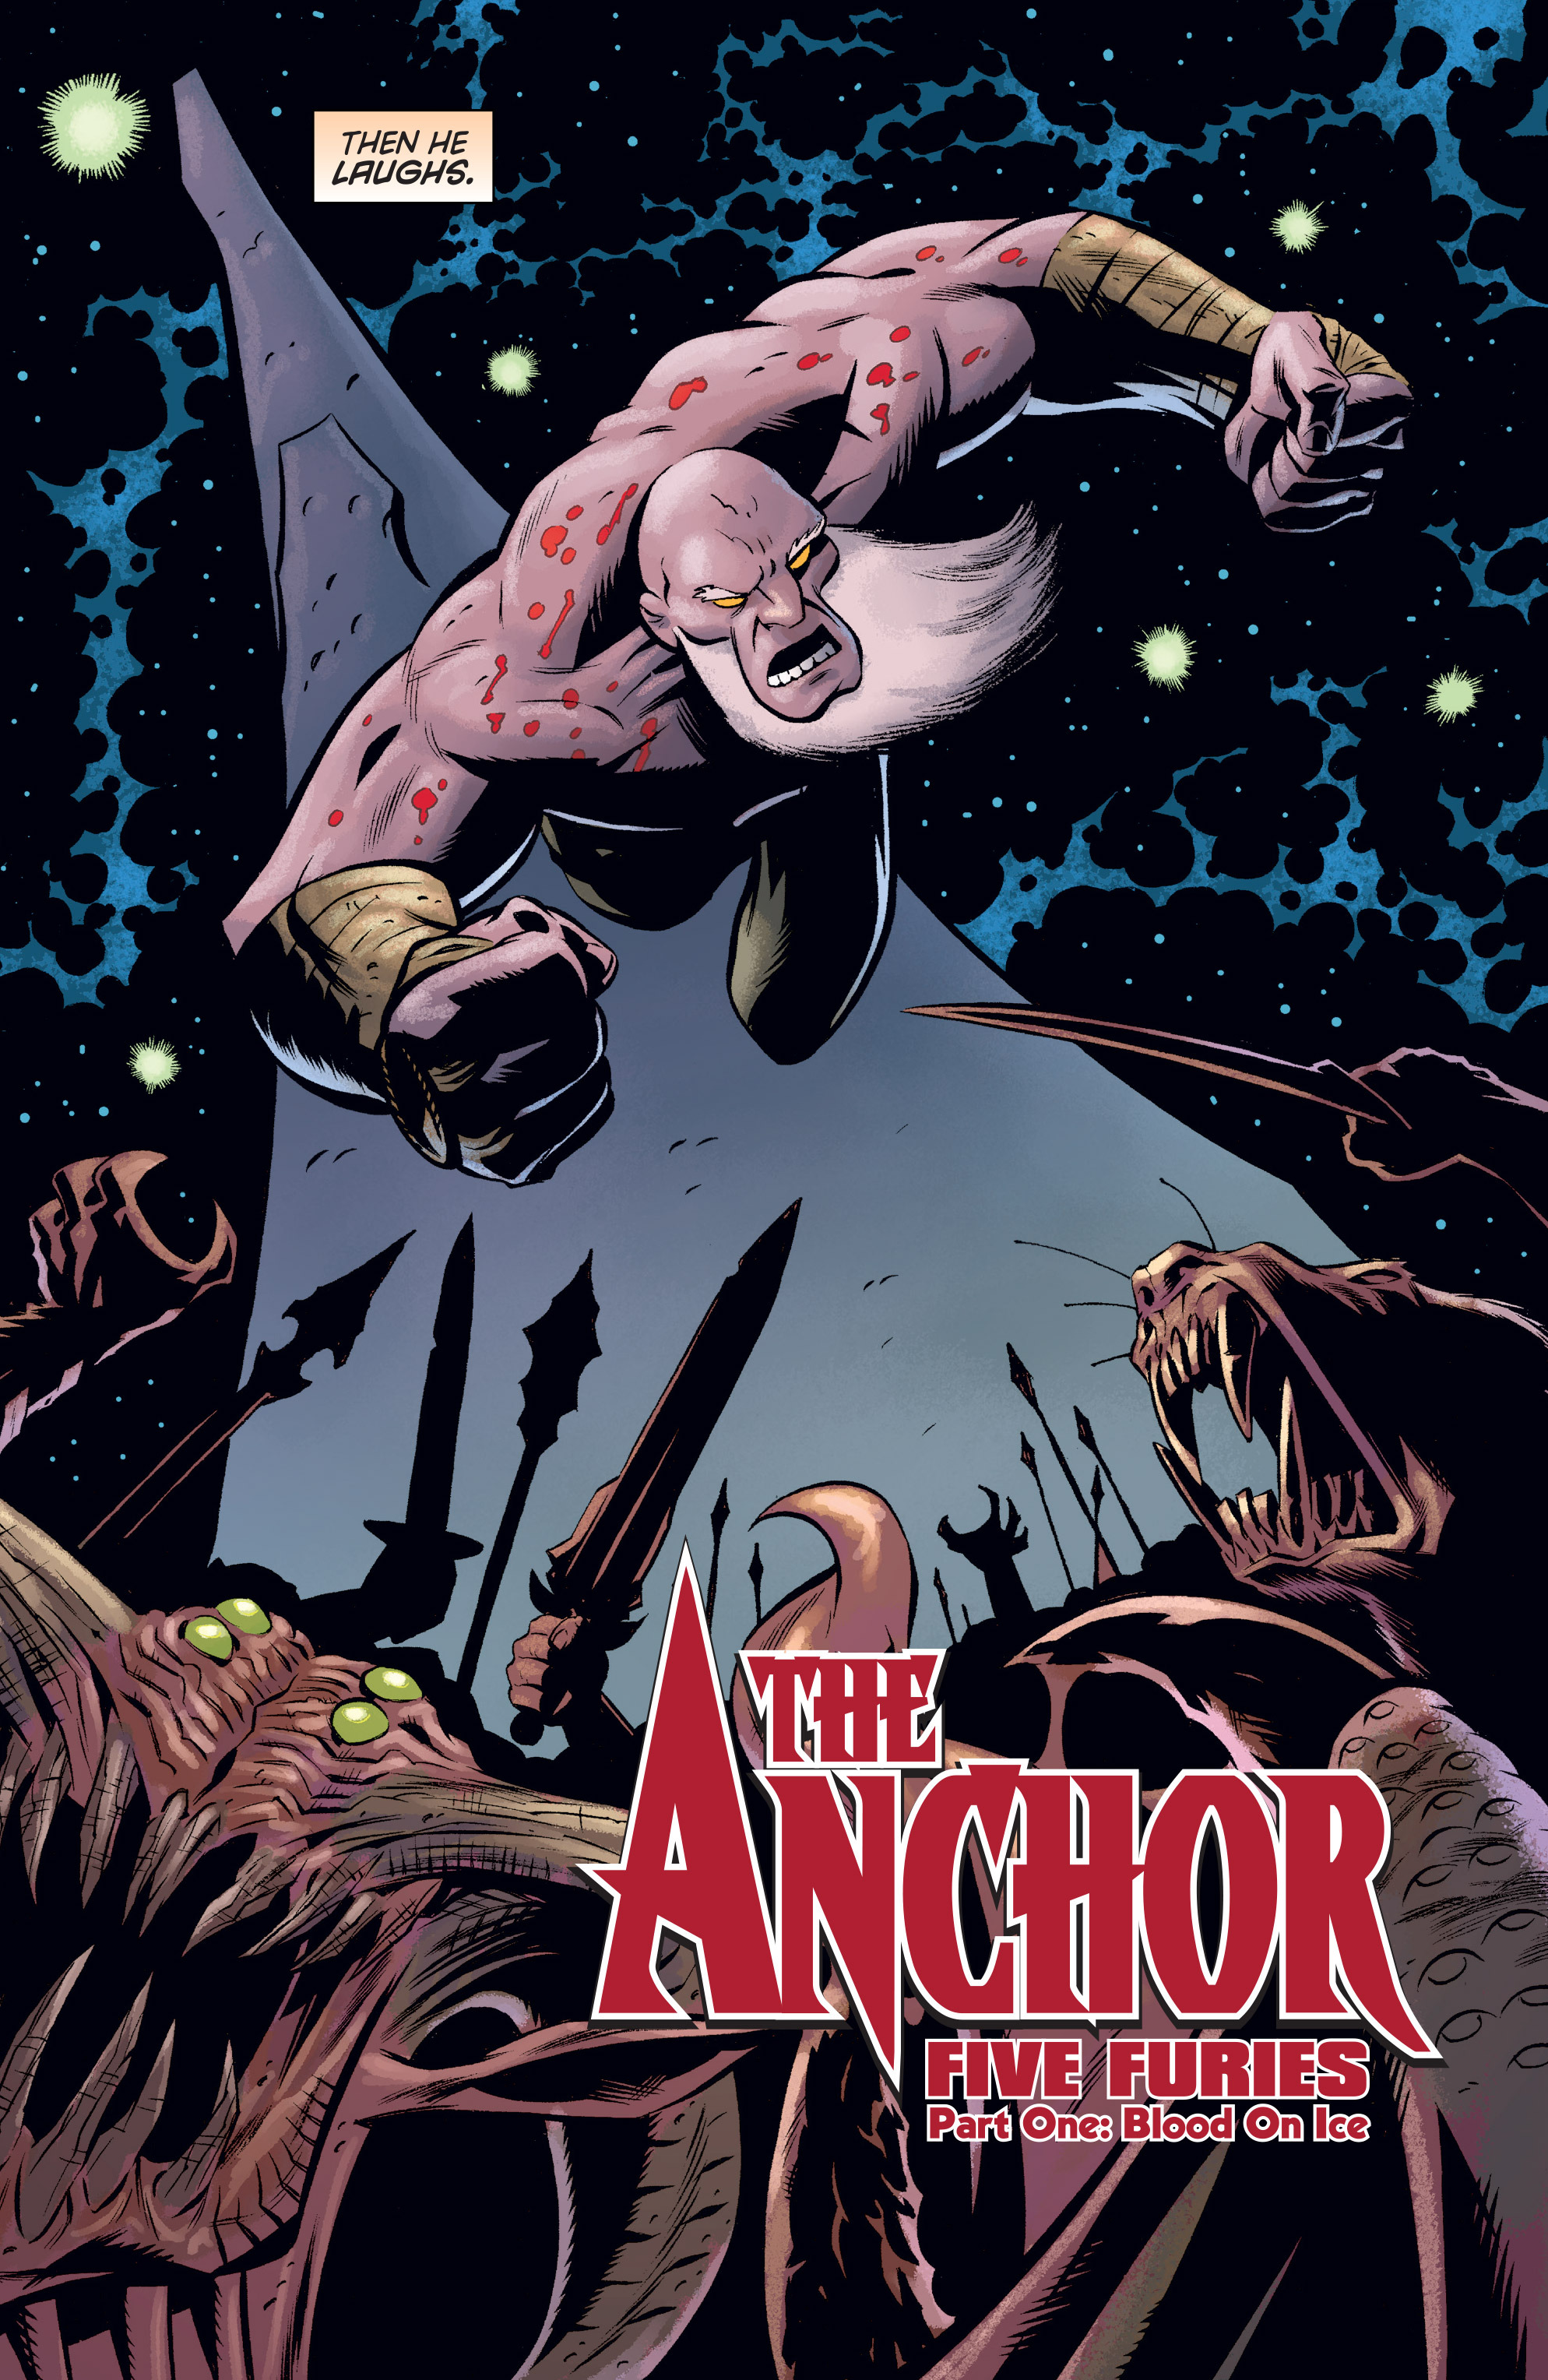 Read online The Anchor comic -  Issue # TPB 1 - 8